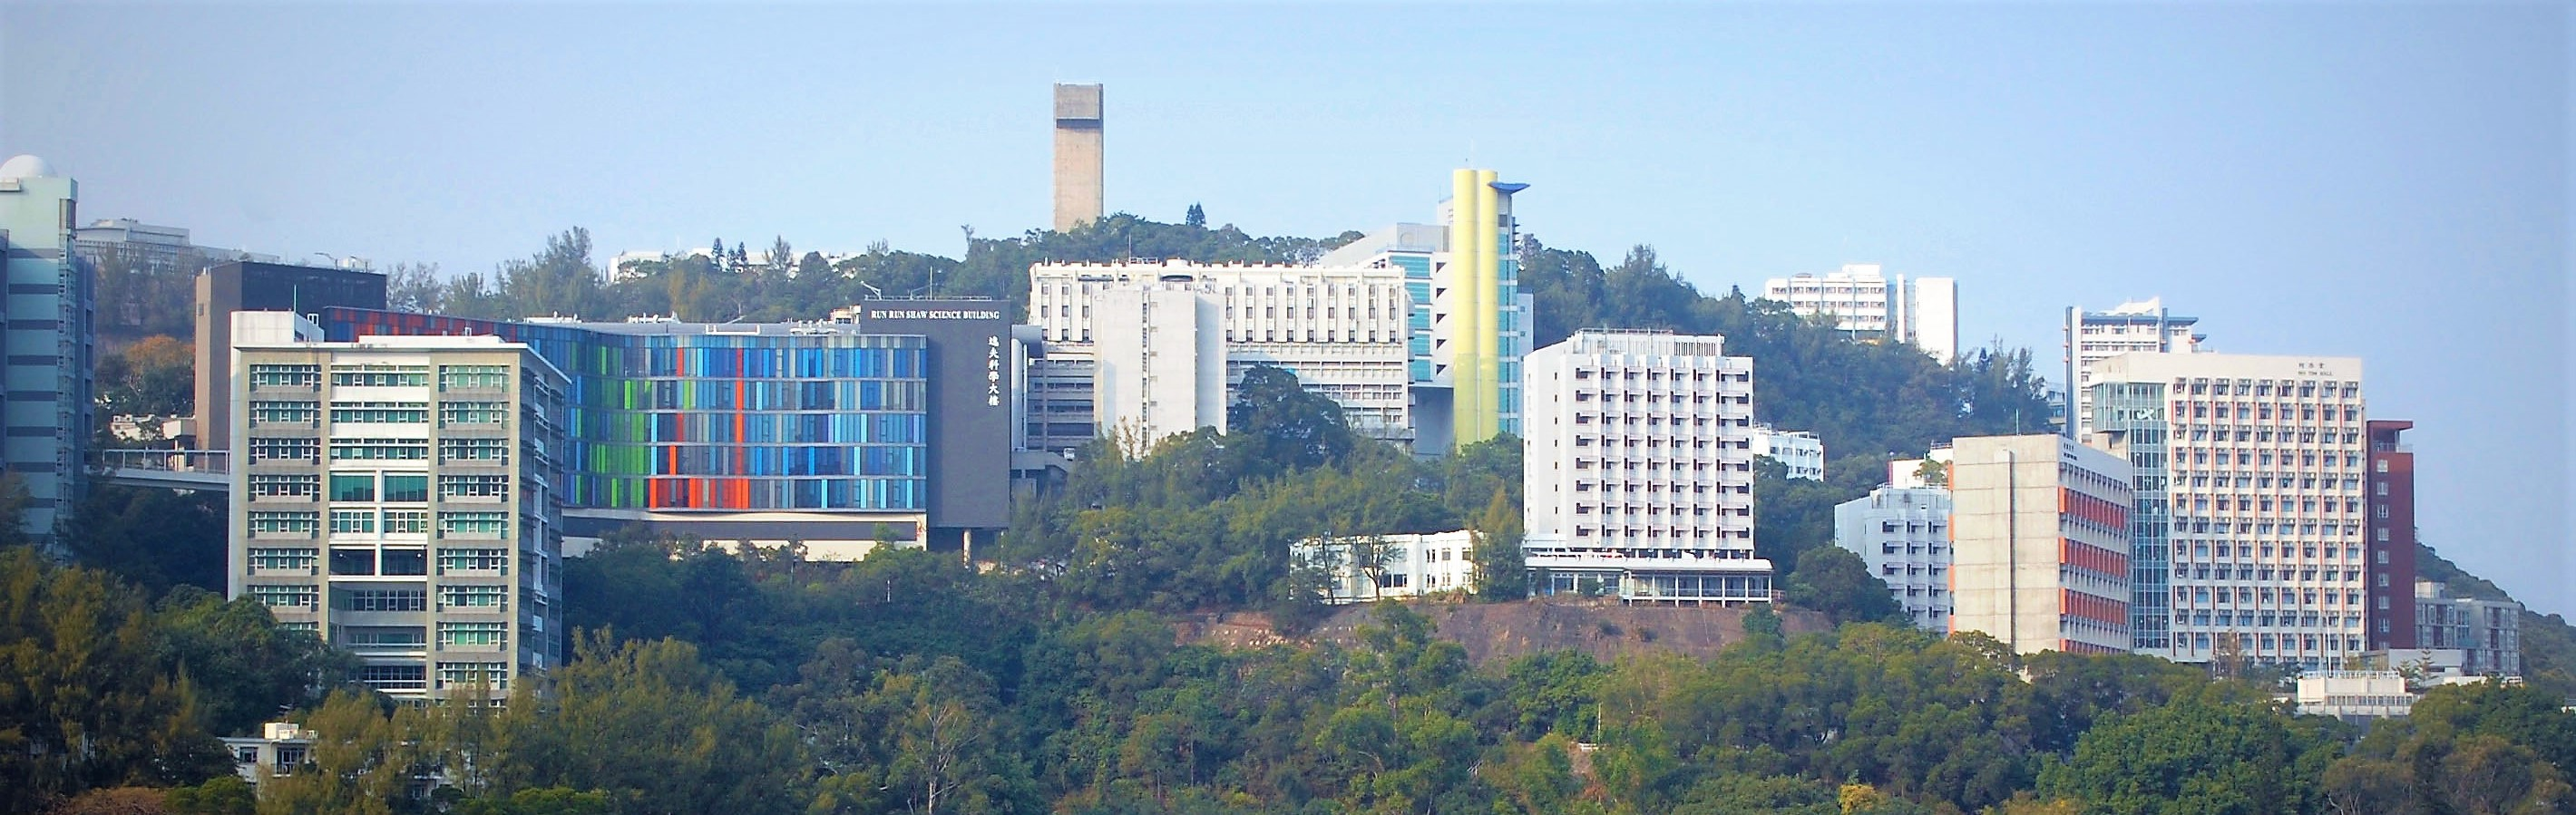 Chinese_University_of_Hong_Kong